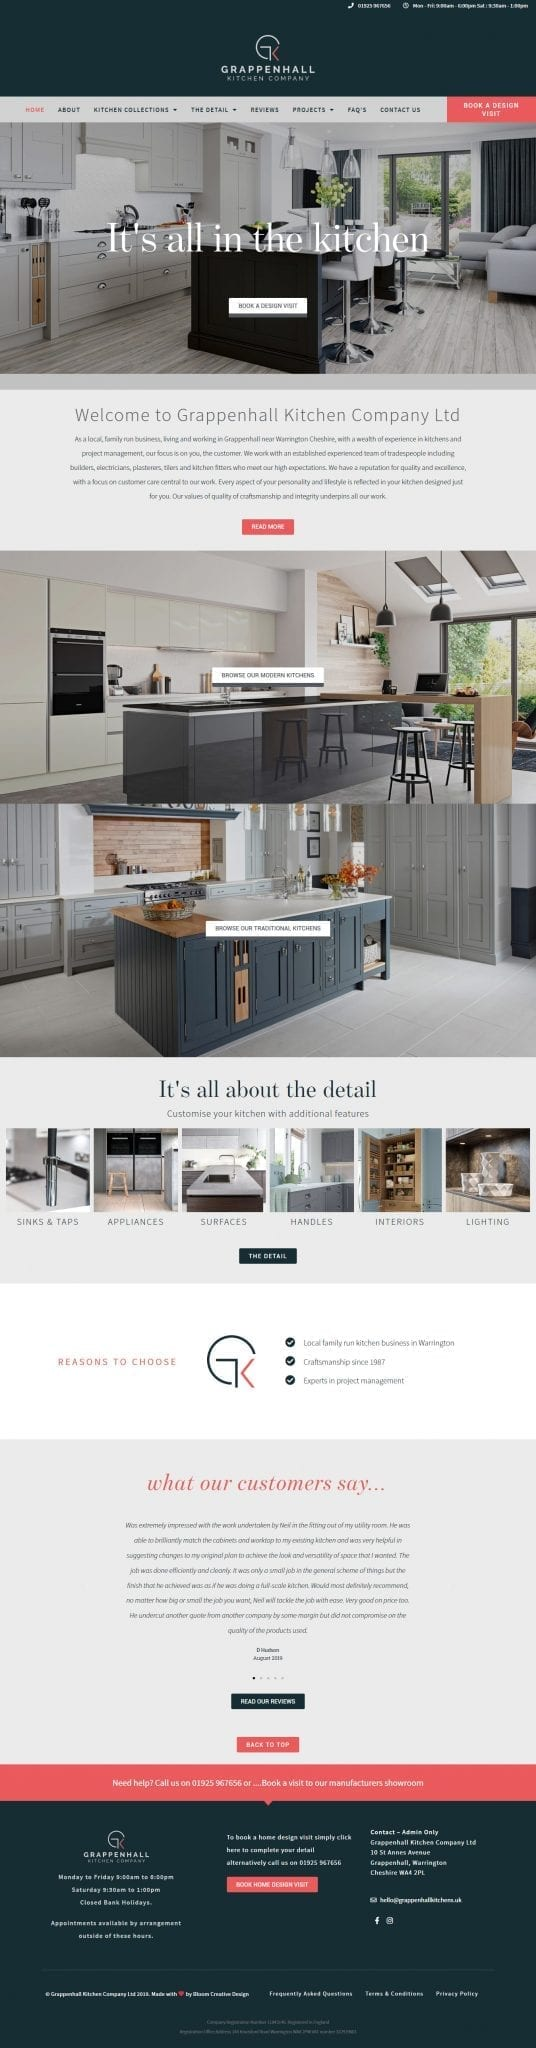 Grappenhall Kitchen Company website screenshot